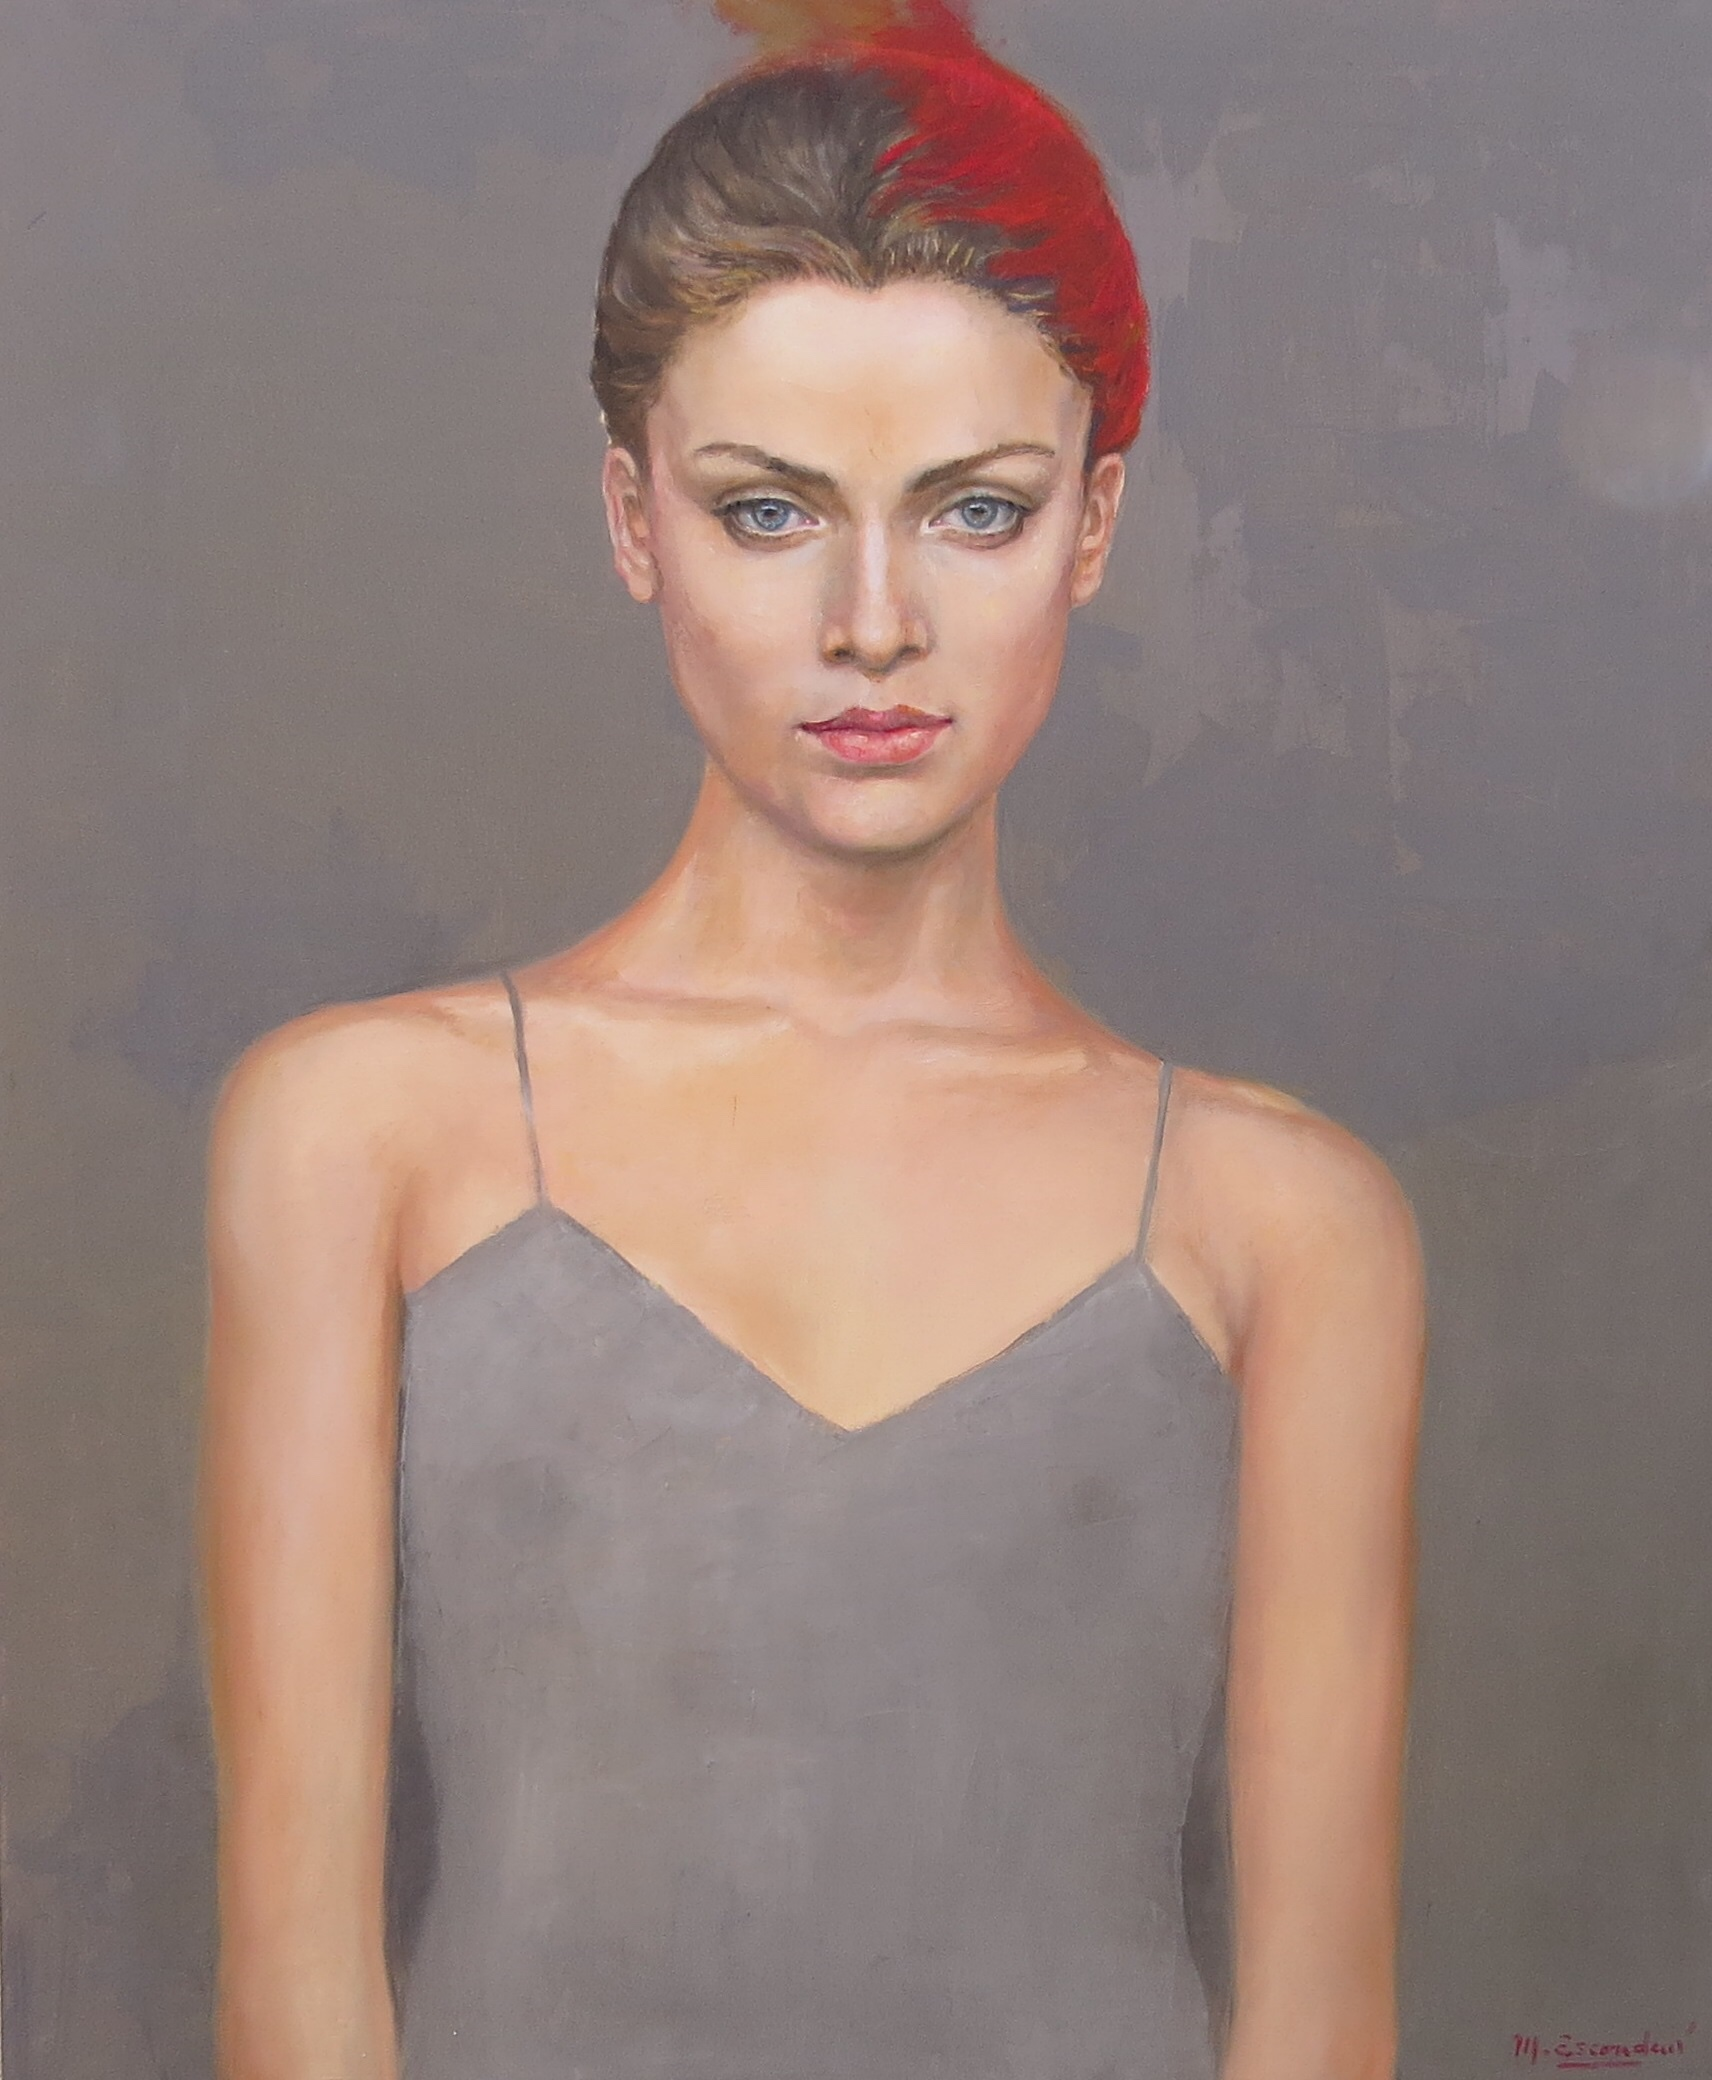 """Luisa"" oil on canvas 1.50m x 1.20m"